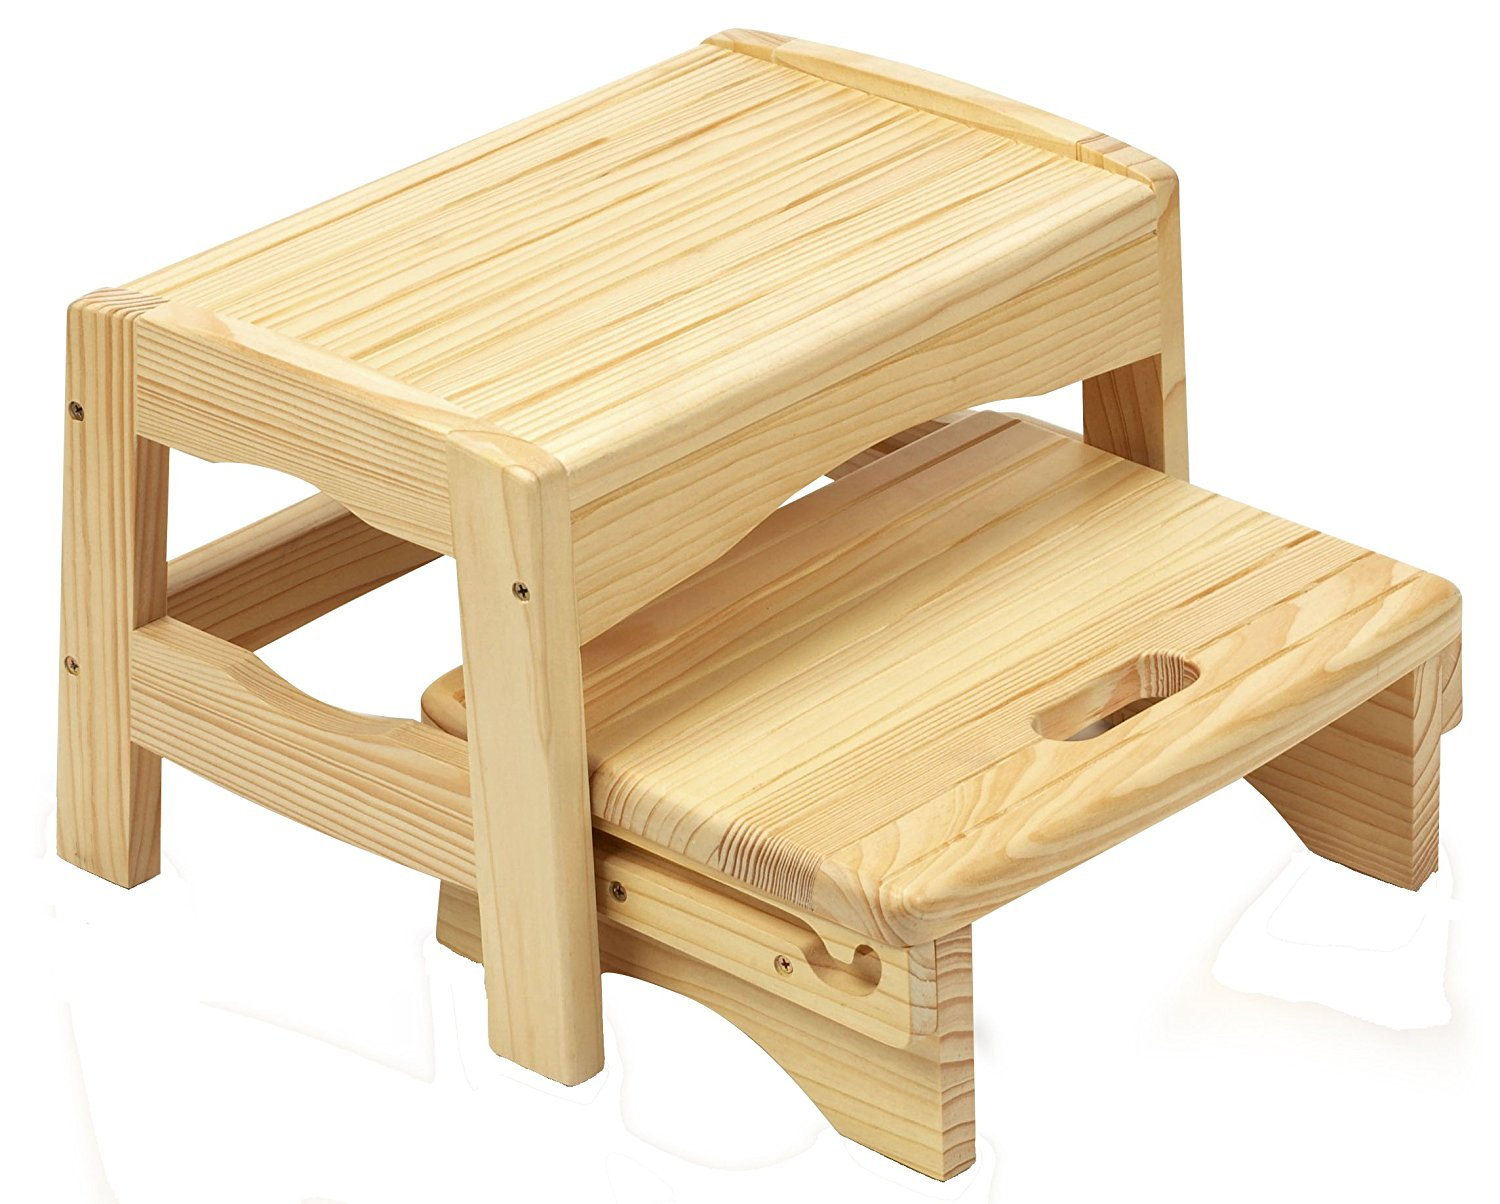 wooden step stool amazon.com : safety 1st wooden two step stool : toilet training step stools PVFWKWV